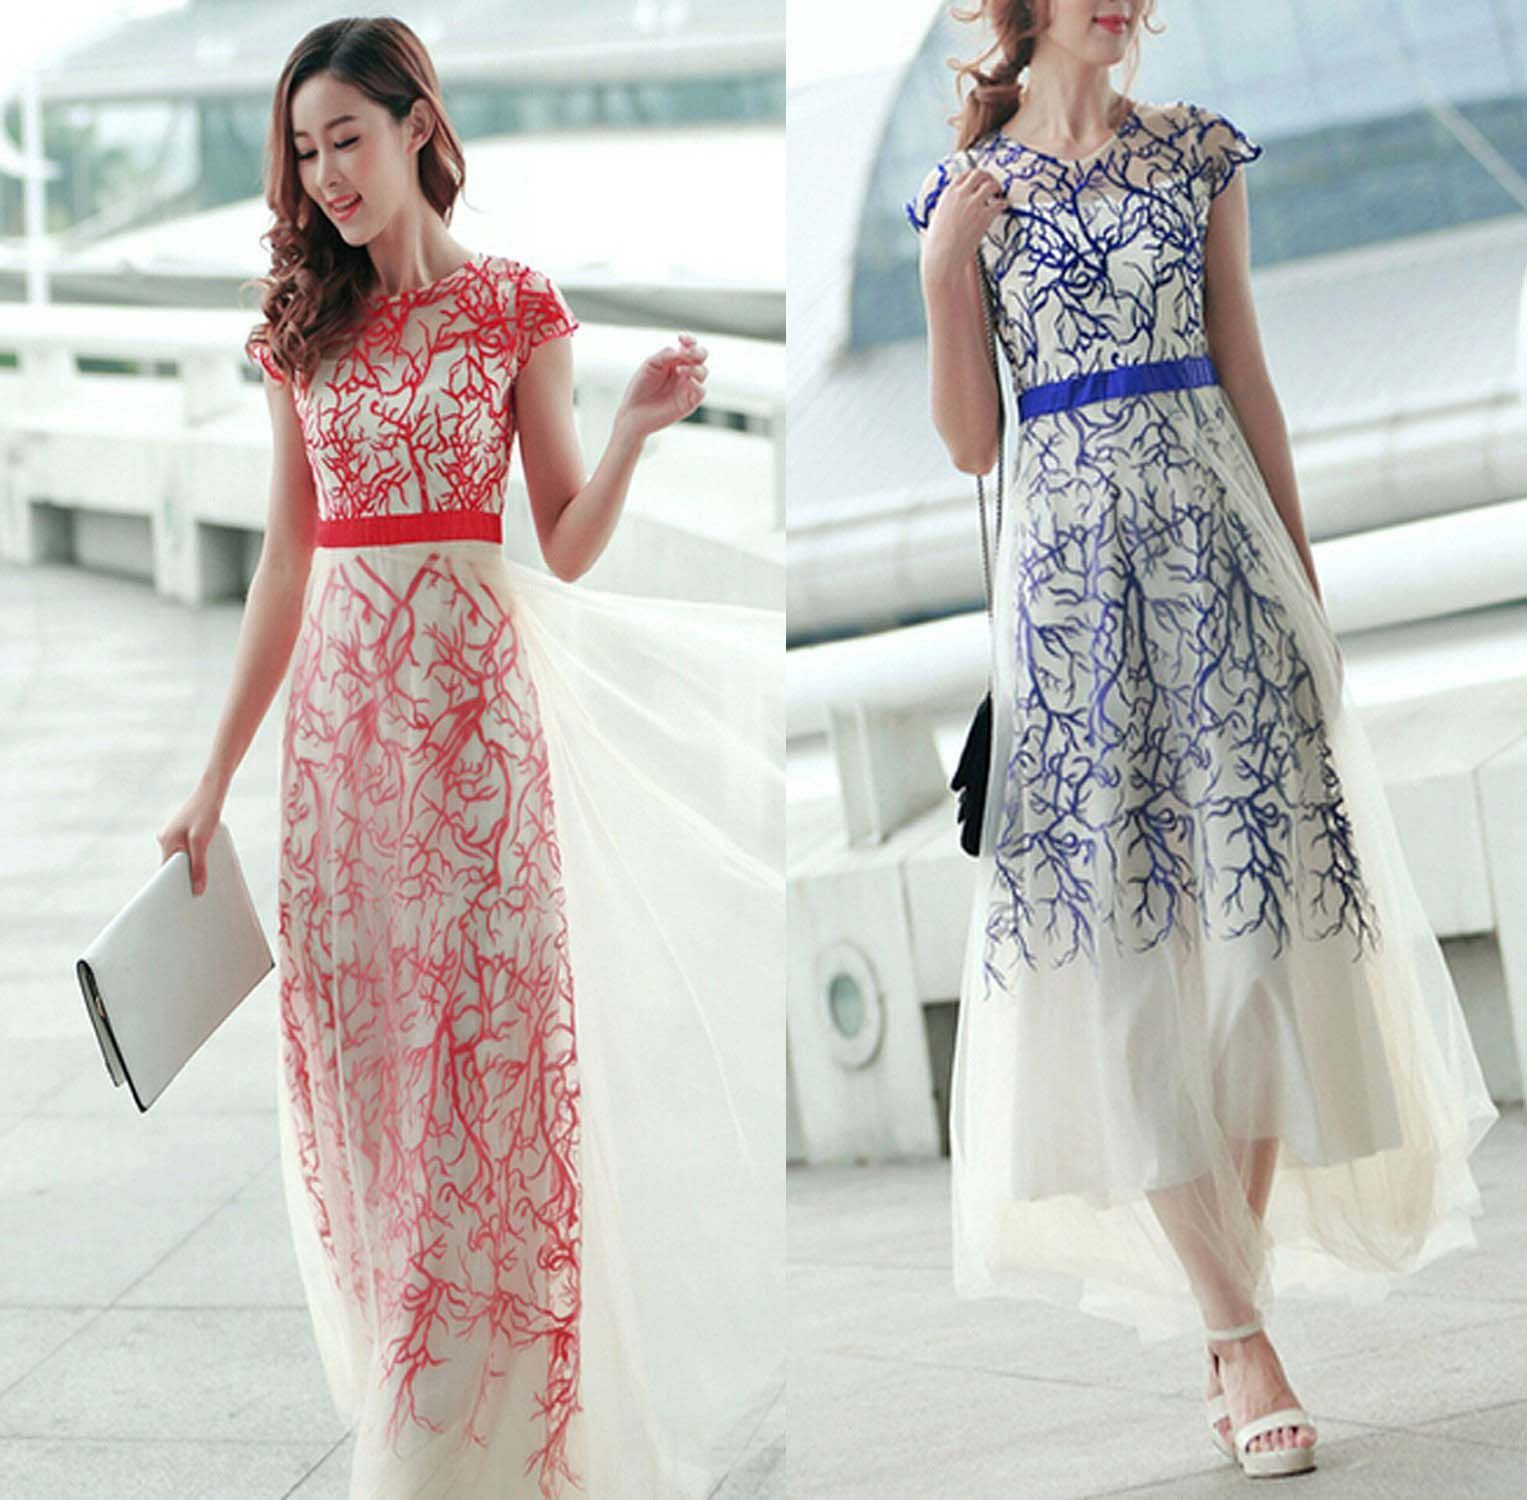 New arrival embroidery long prom dress evening dresse sweetheart